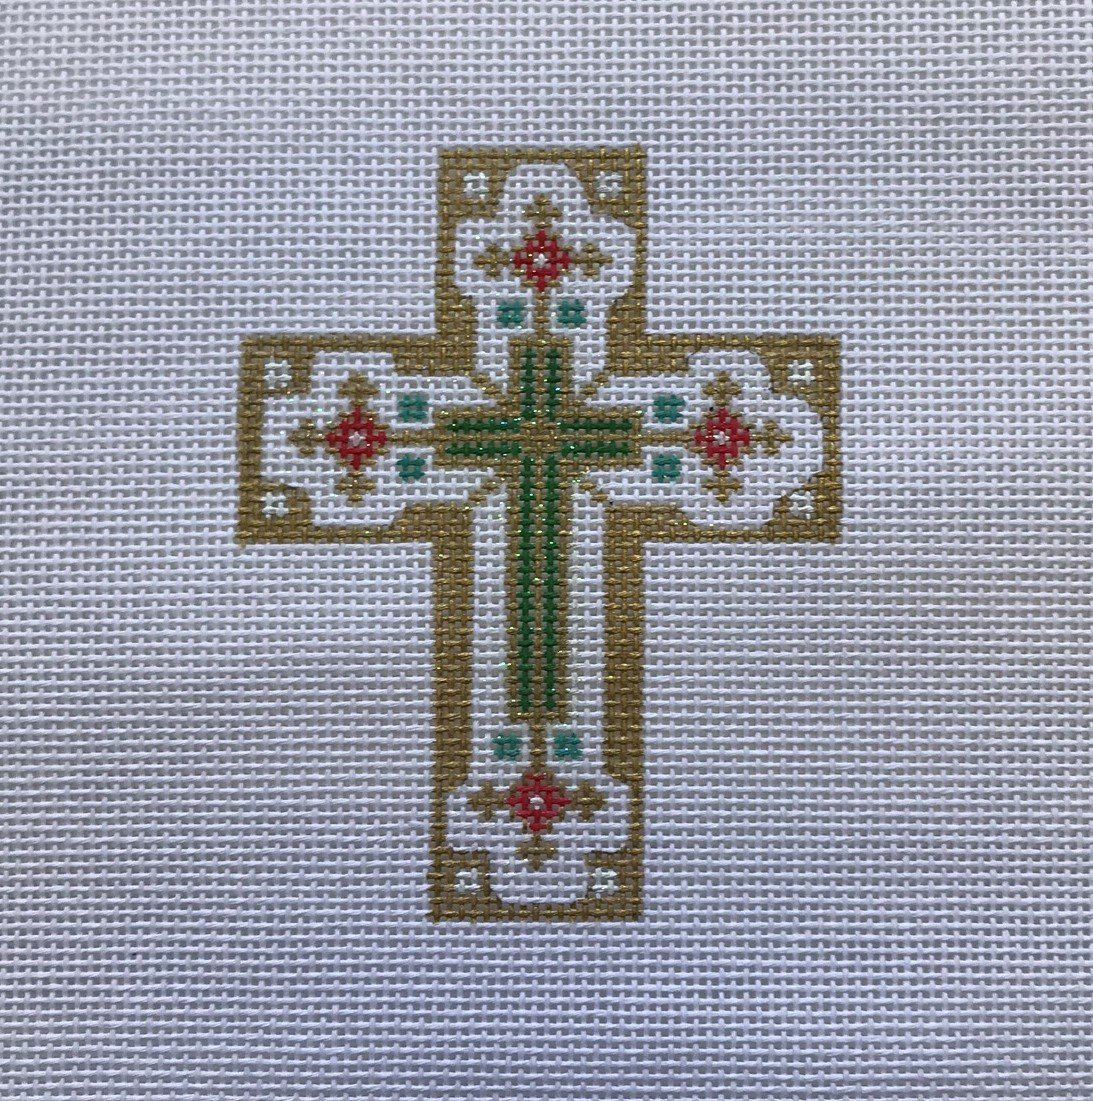 CRN/528JH Small Gold & White Cross